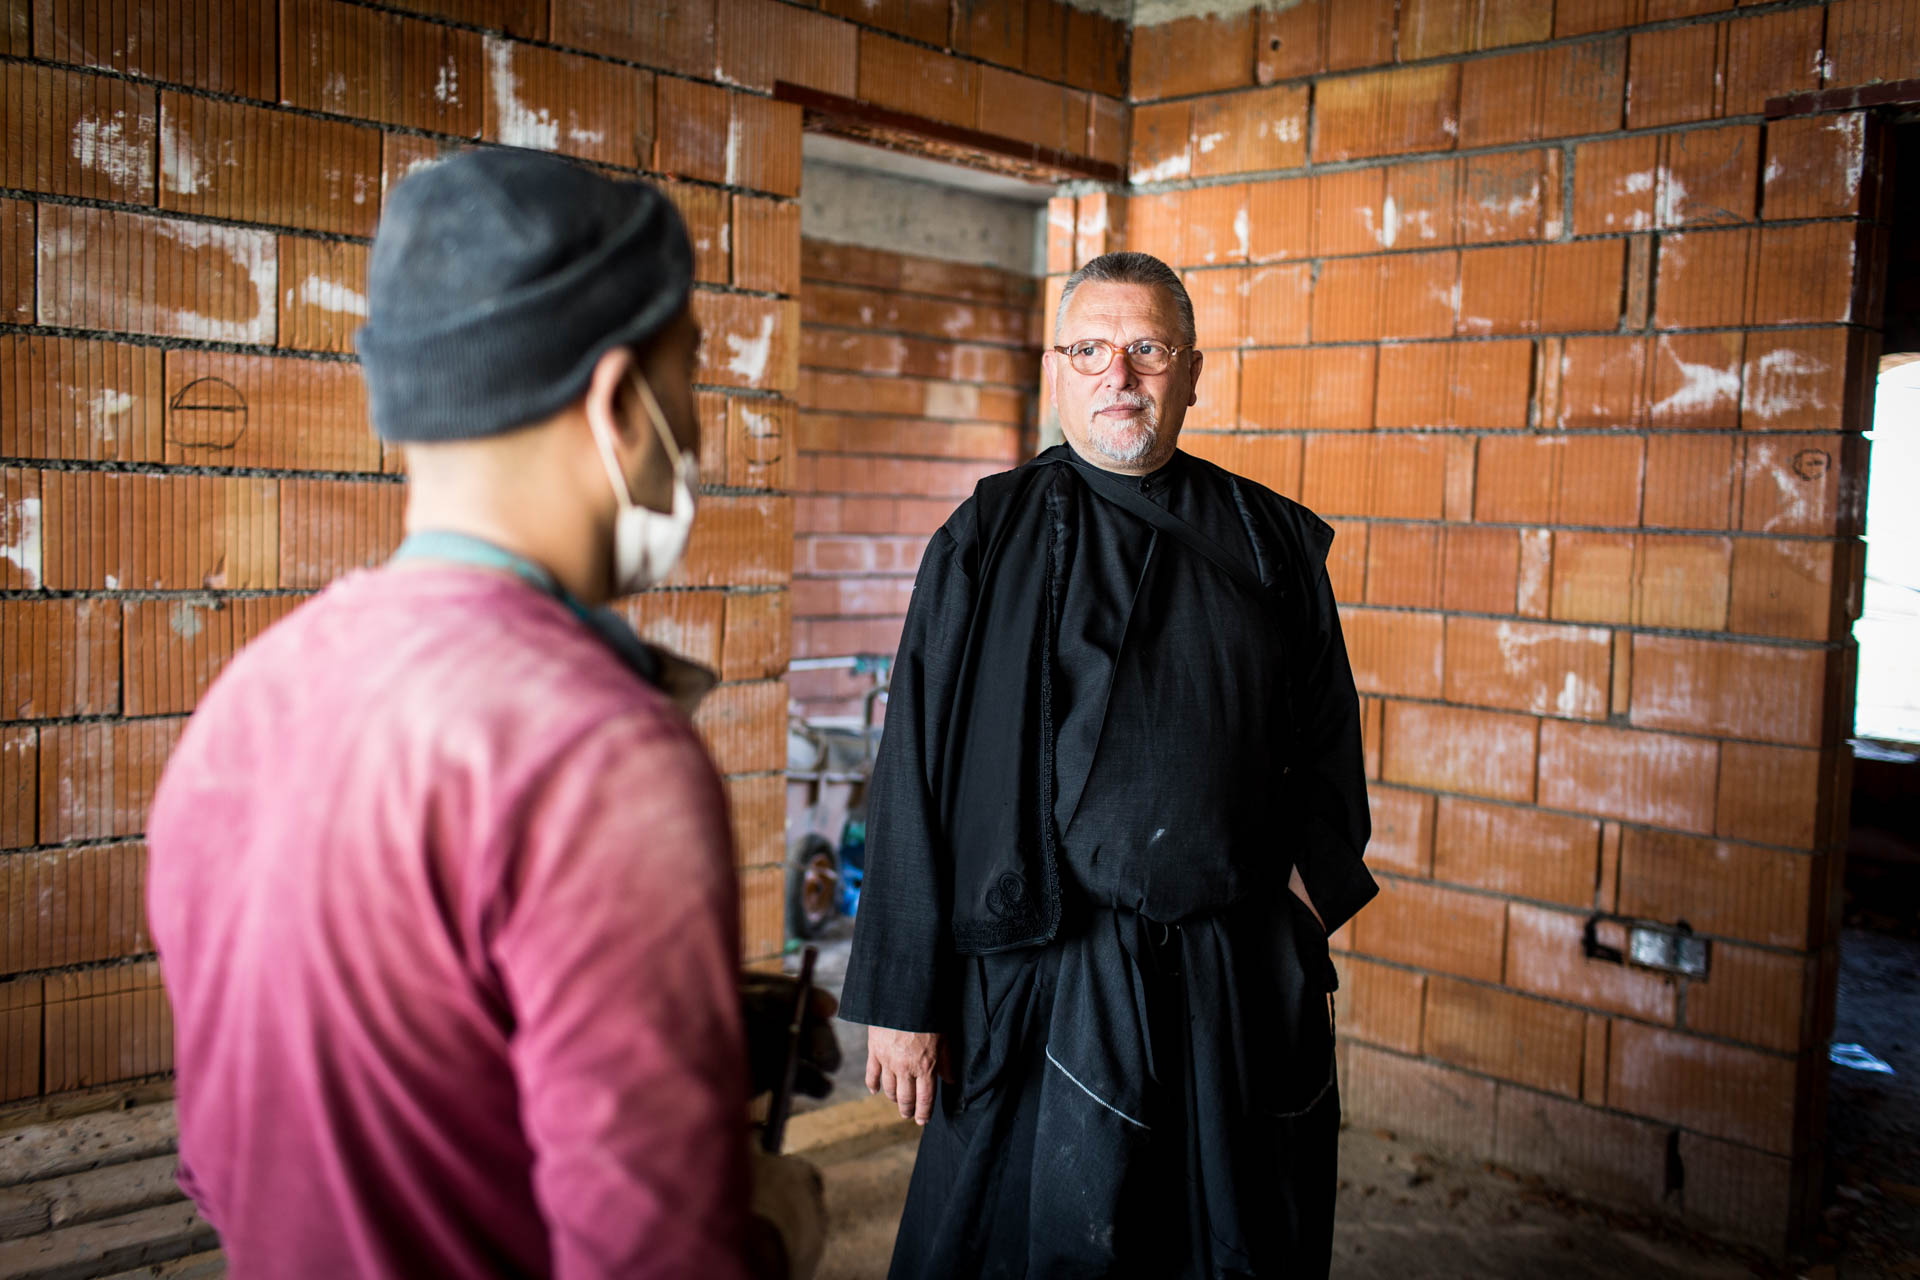 Because Father Jens is planning the construction of a new building to extend the monastery, he personally visits the construction site regularly.